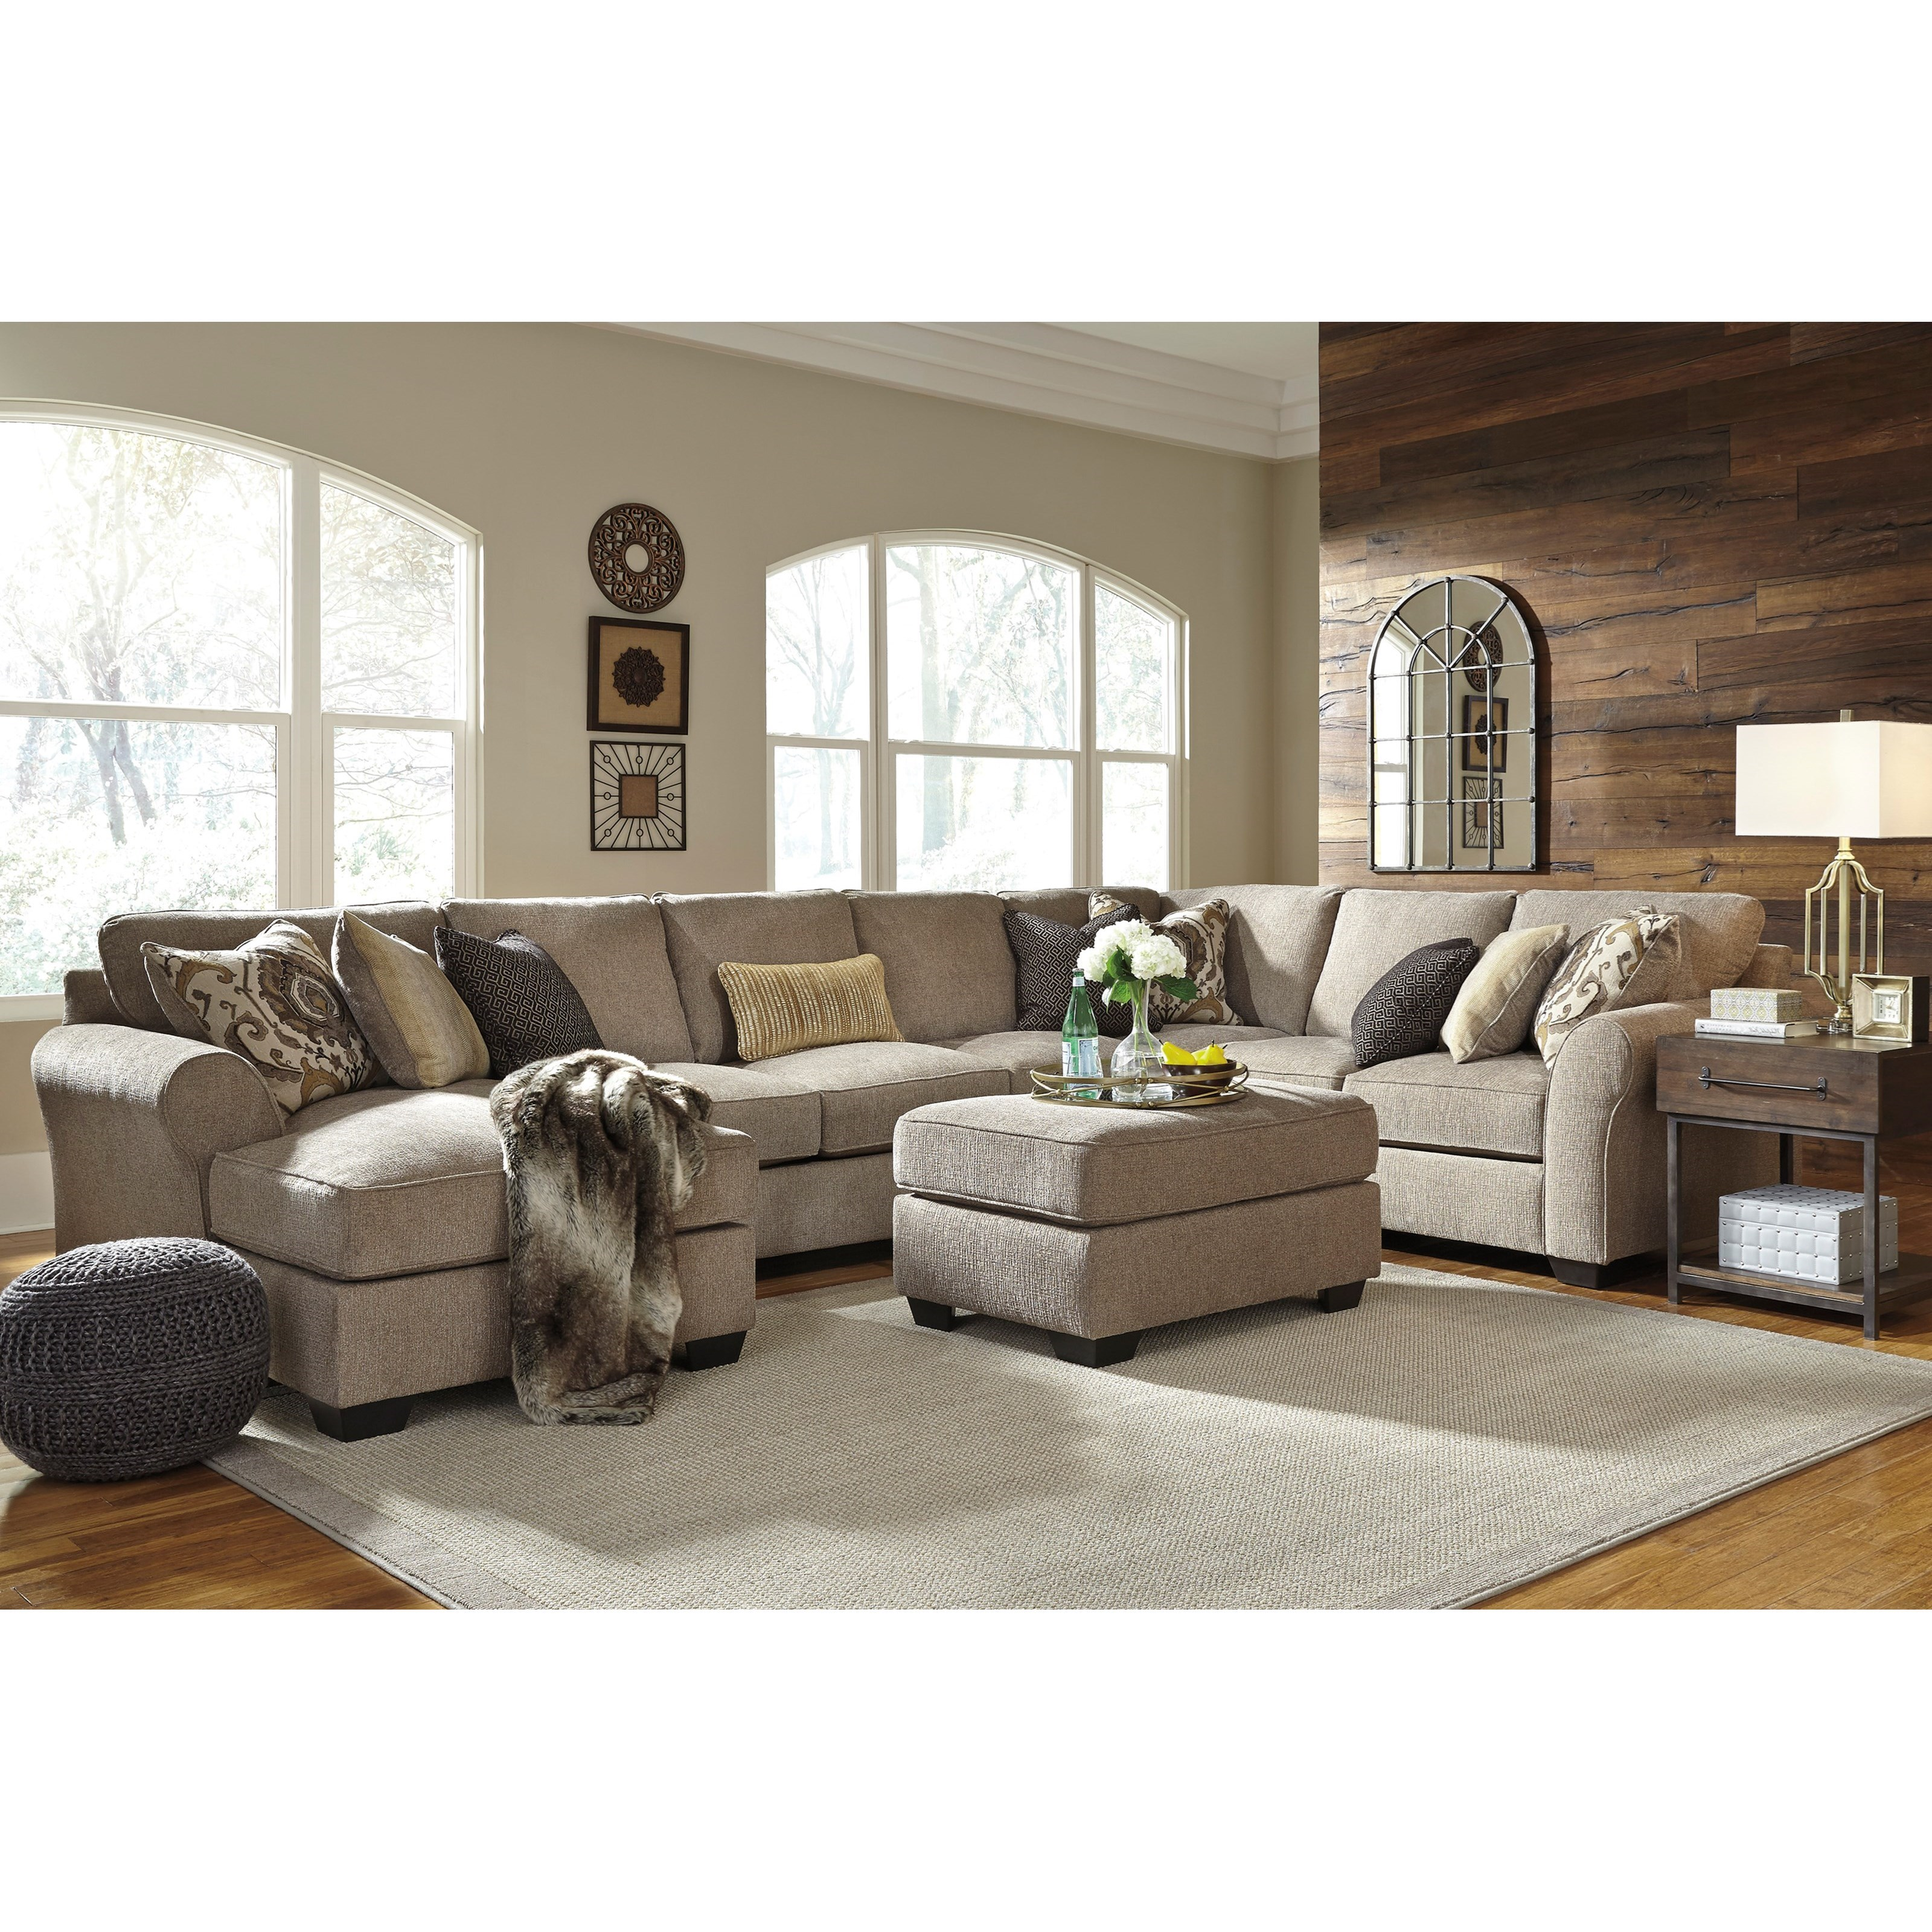 Benchcraft by ashley pantomine 4 piece sectional w left for Benchcraft chaise lounge